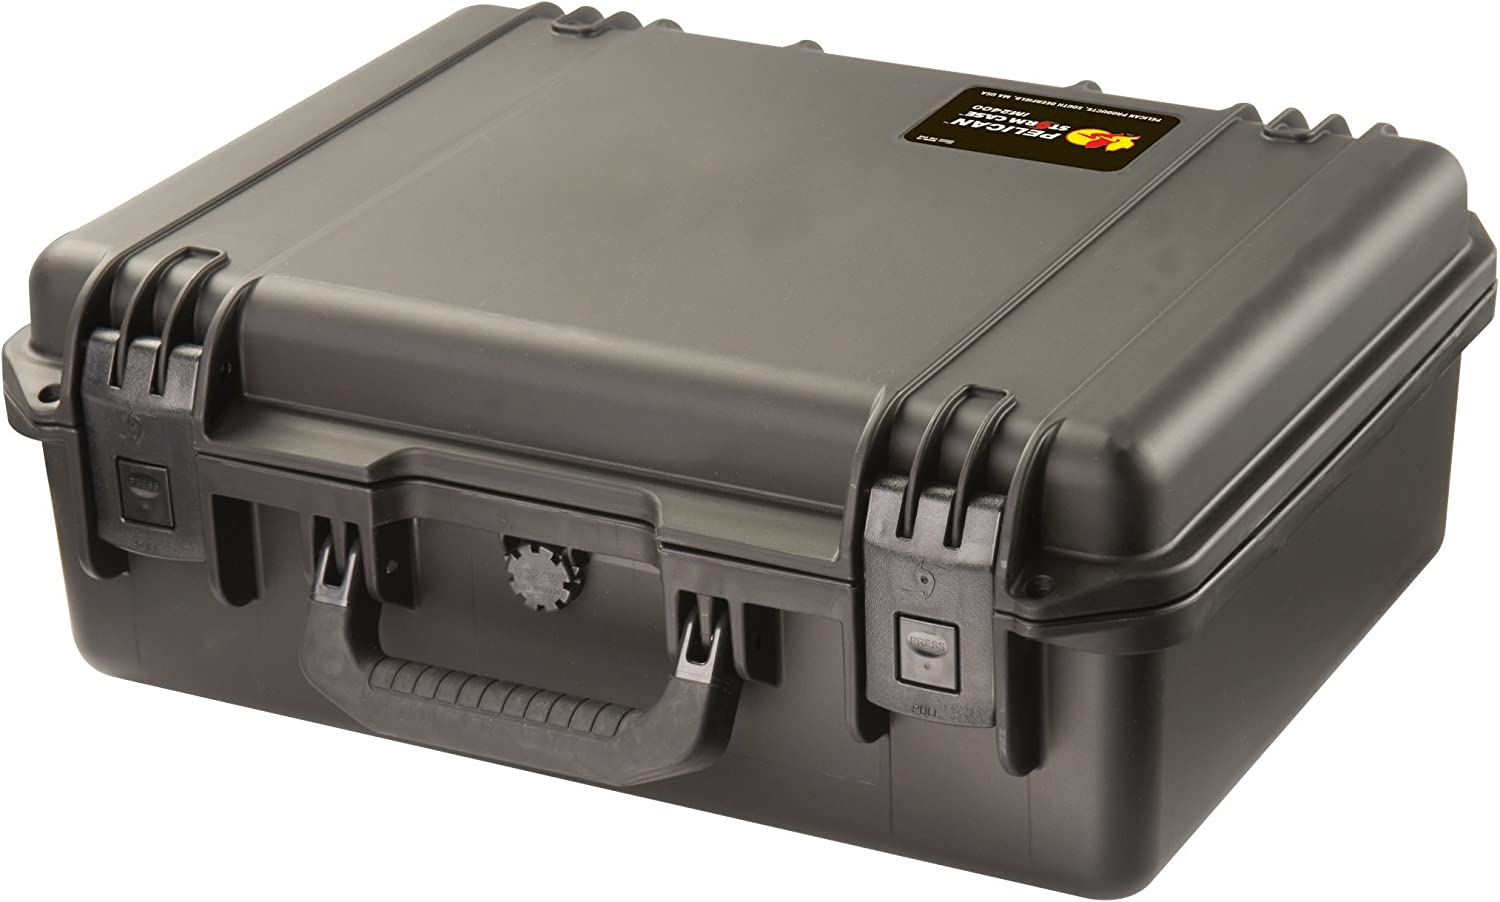 Waterproof Case (Dry Box)   Pelican Storm iM2400 Case with Padded Divider Set (Black)